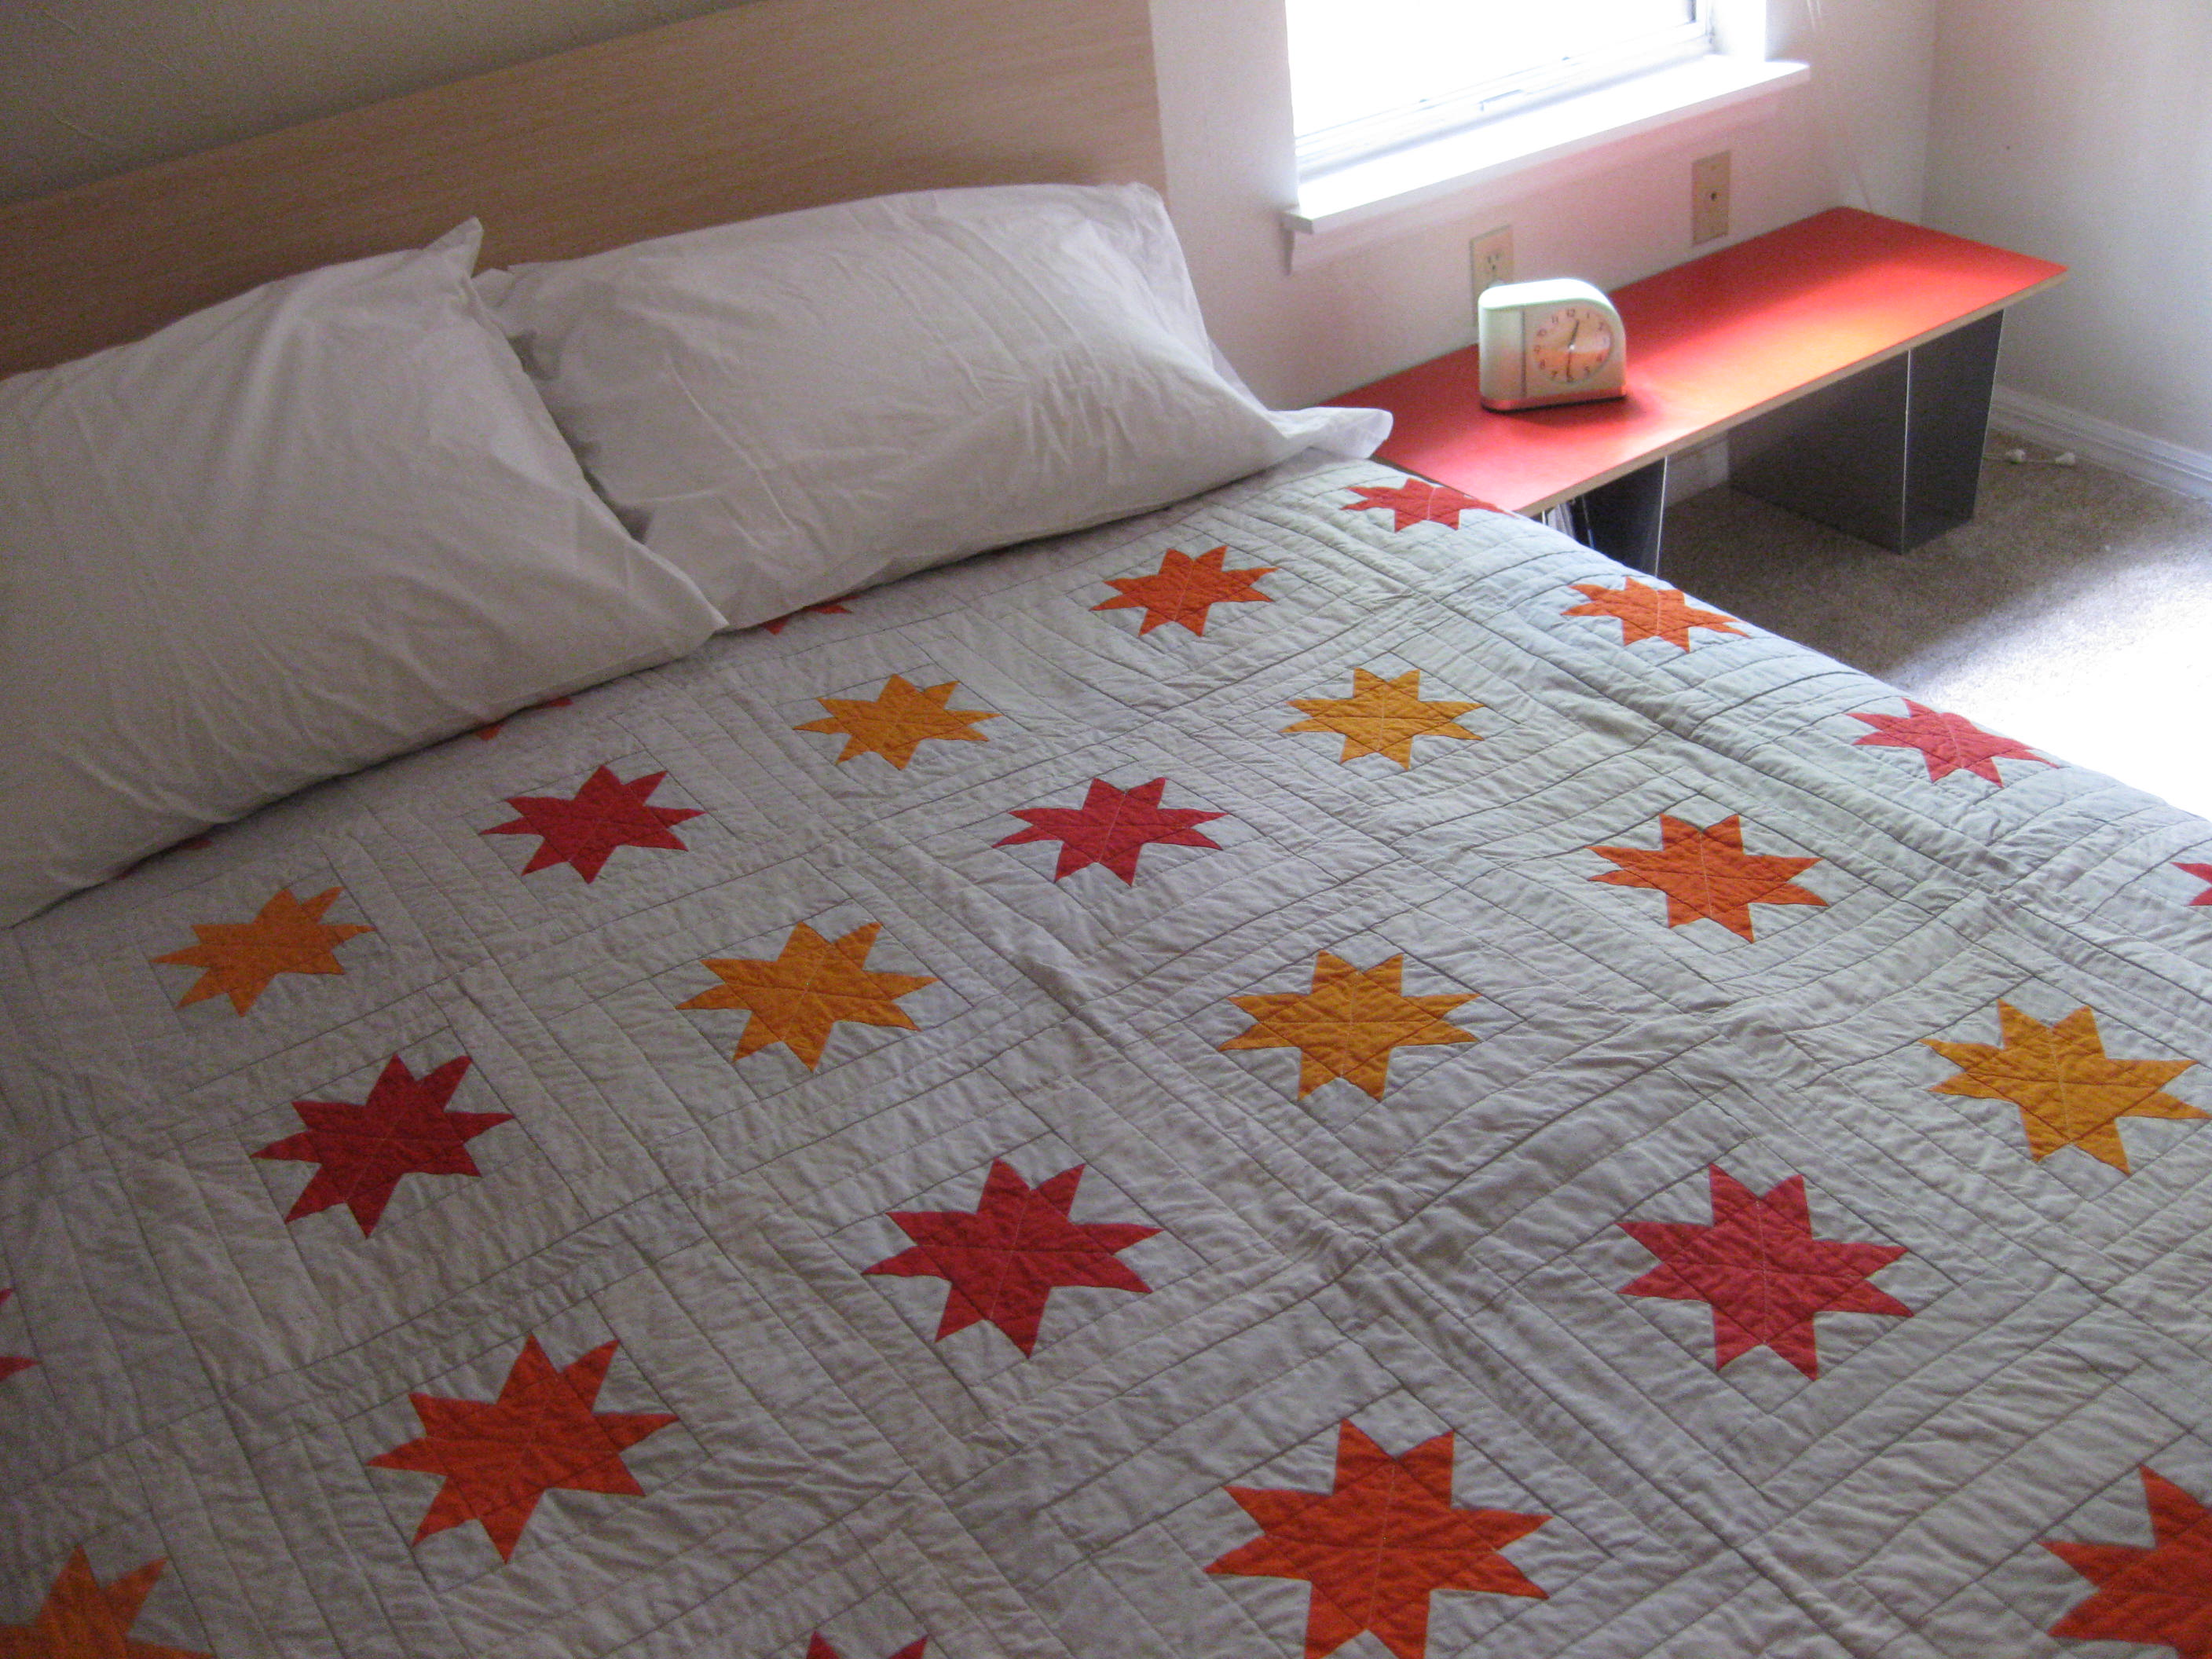 5 Pointed Star Quilting by Christine - 5 Port Swtch Dc Power by